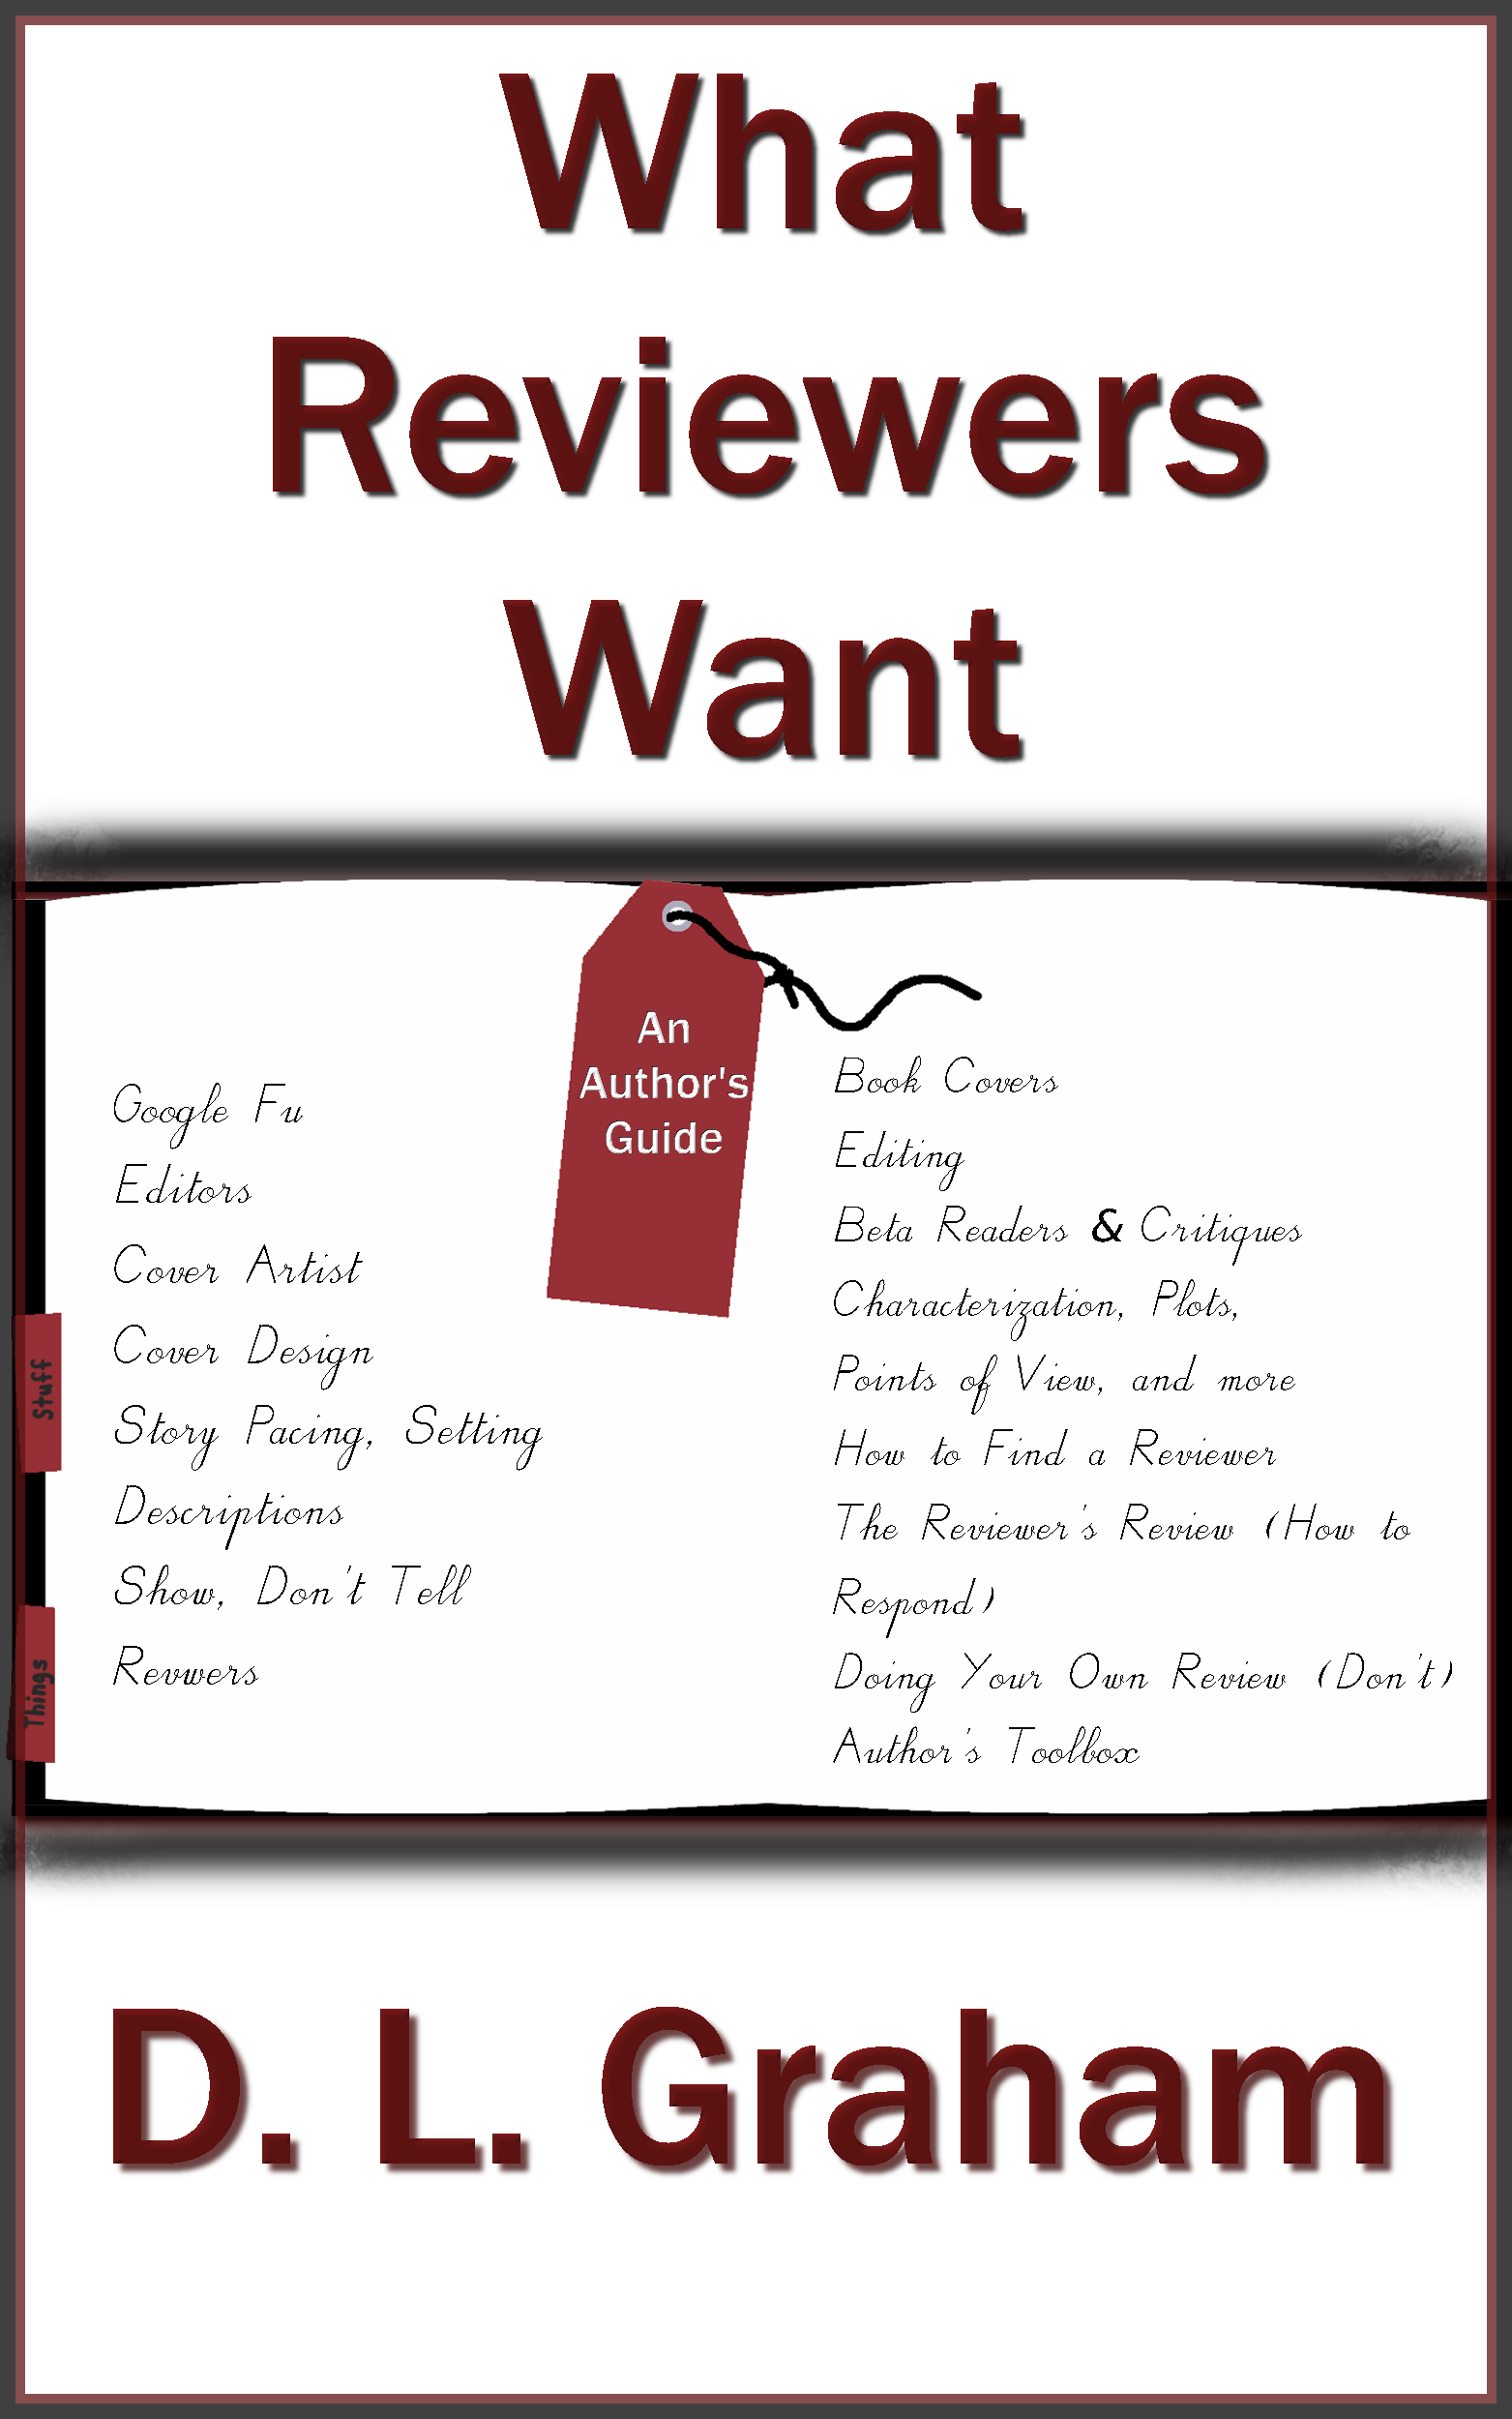 What Reviewers Want